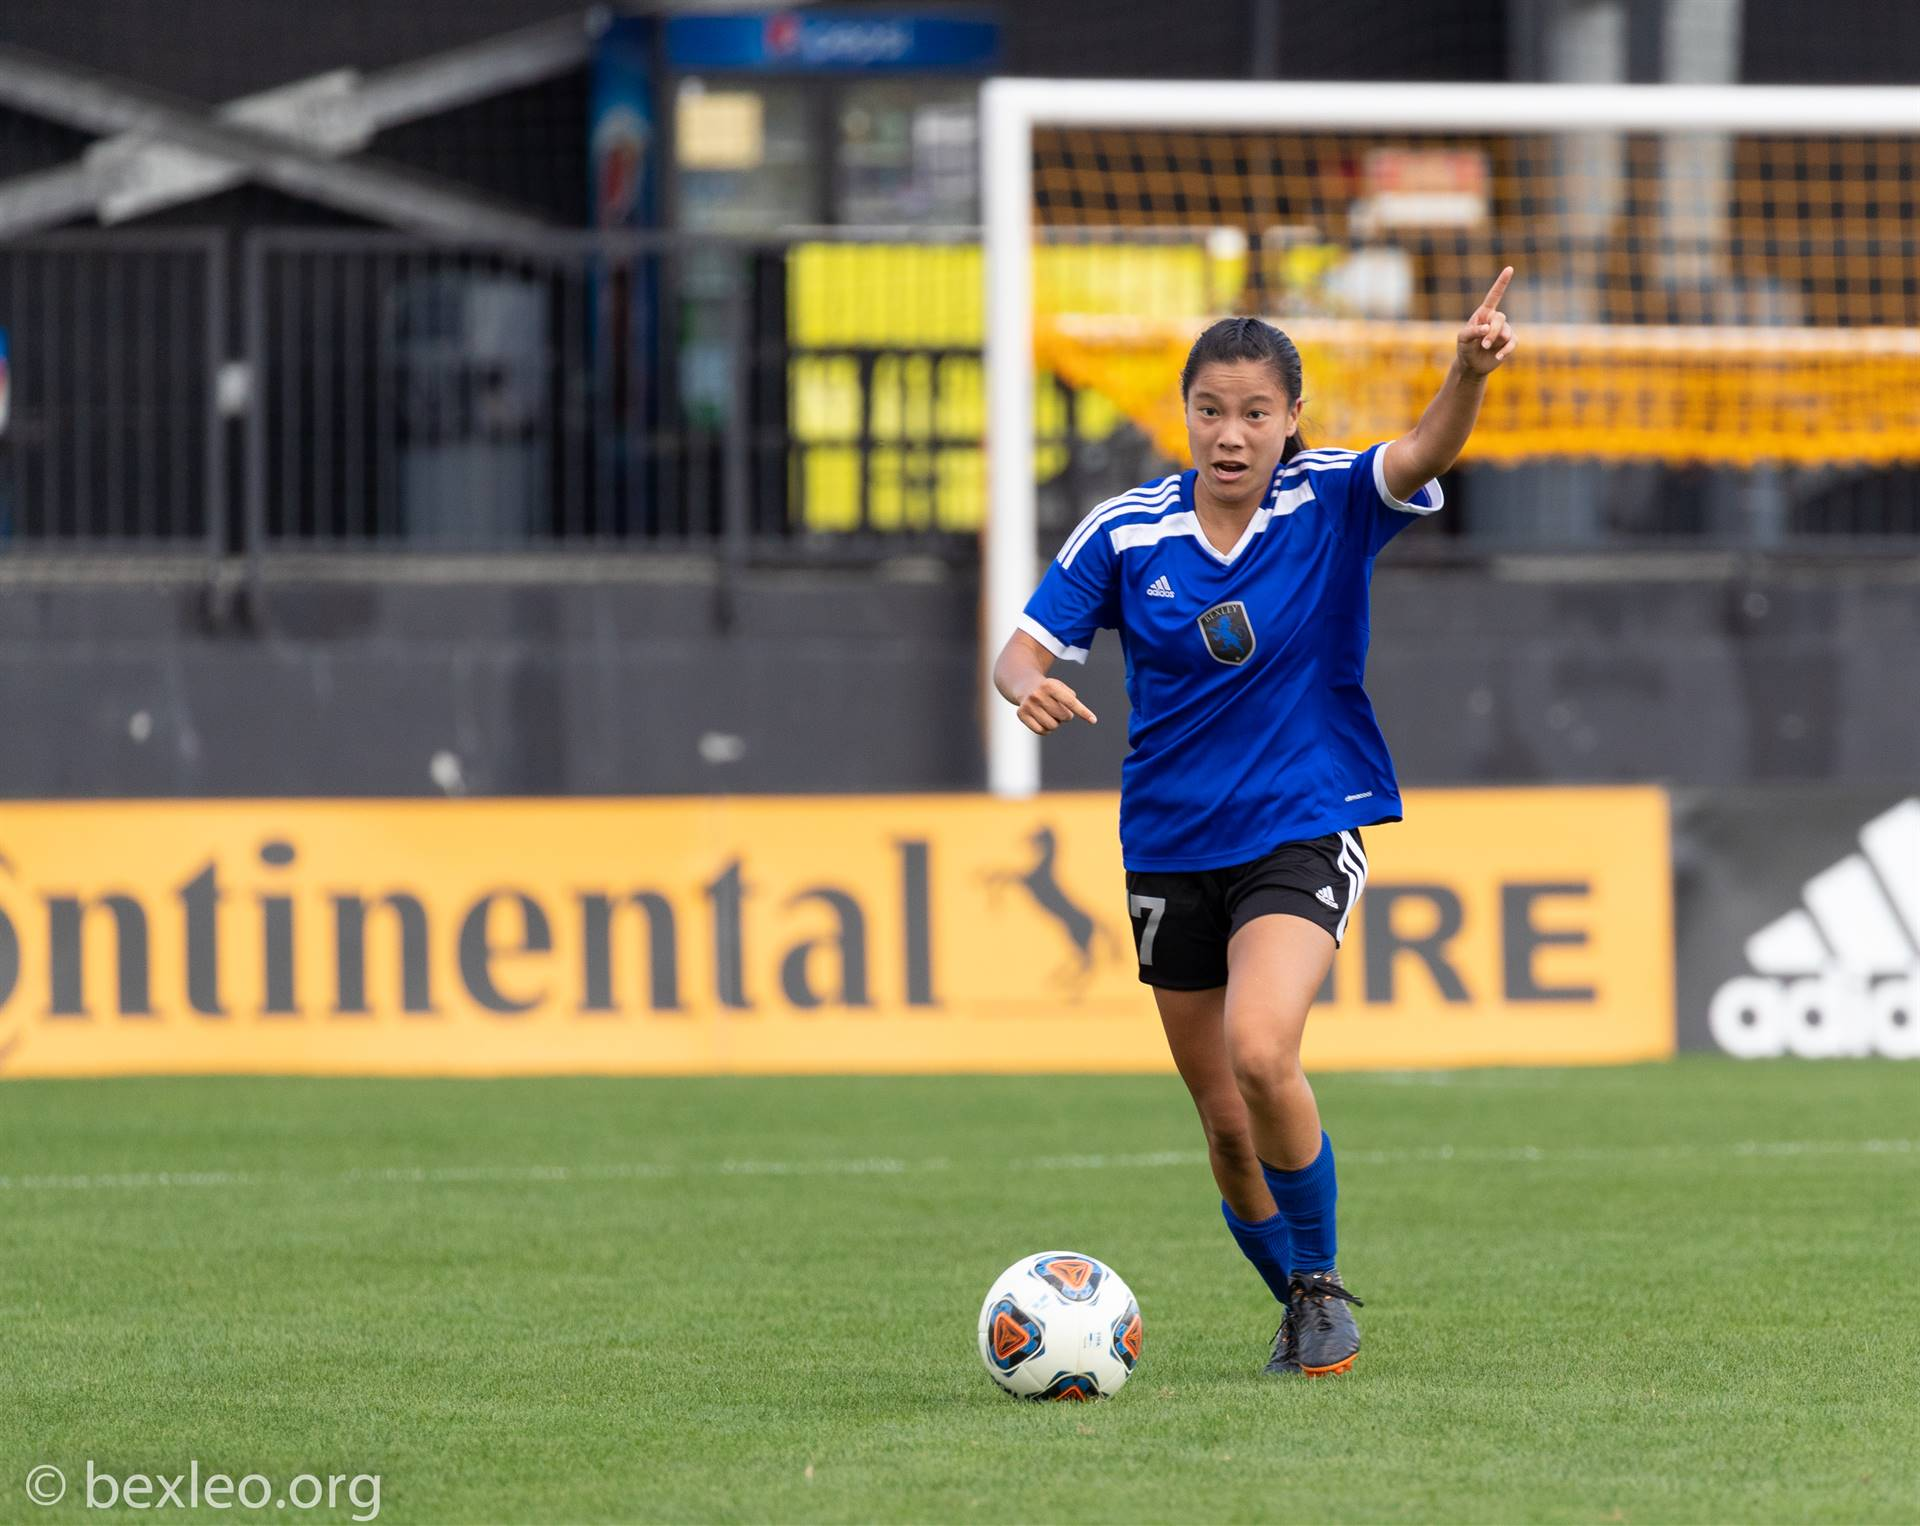 Junior Julia Miracle and the girls soccer team play @ Crew Stadium